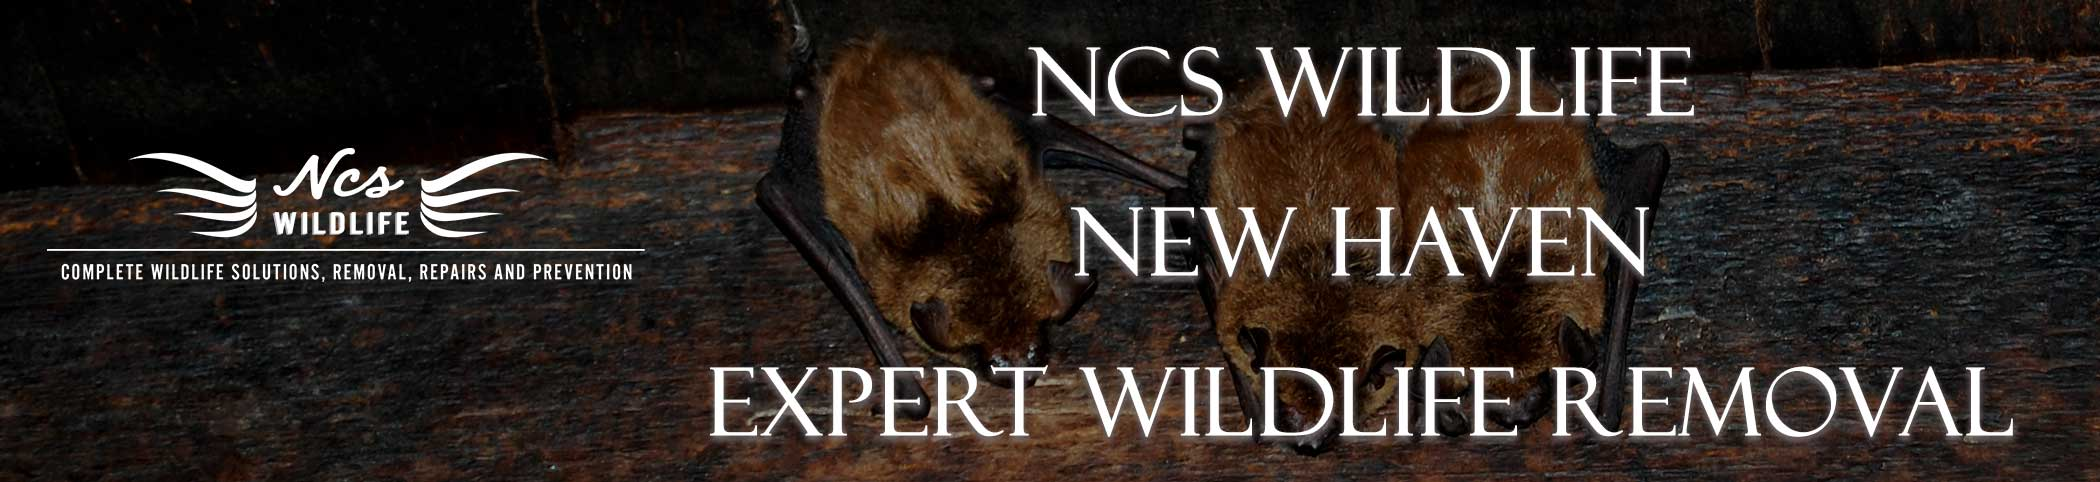 ncs-wildlife-new-haven